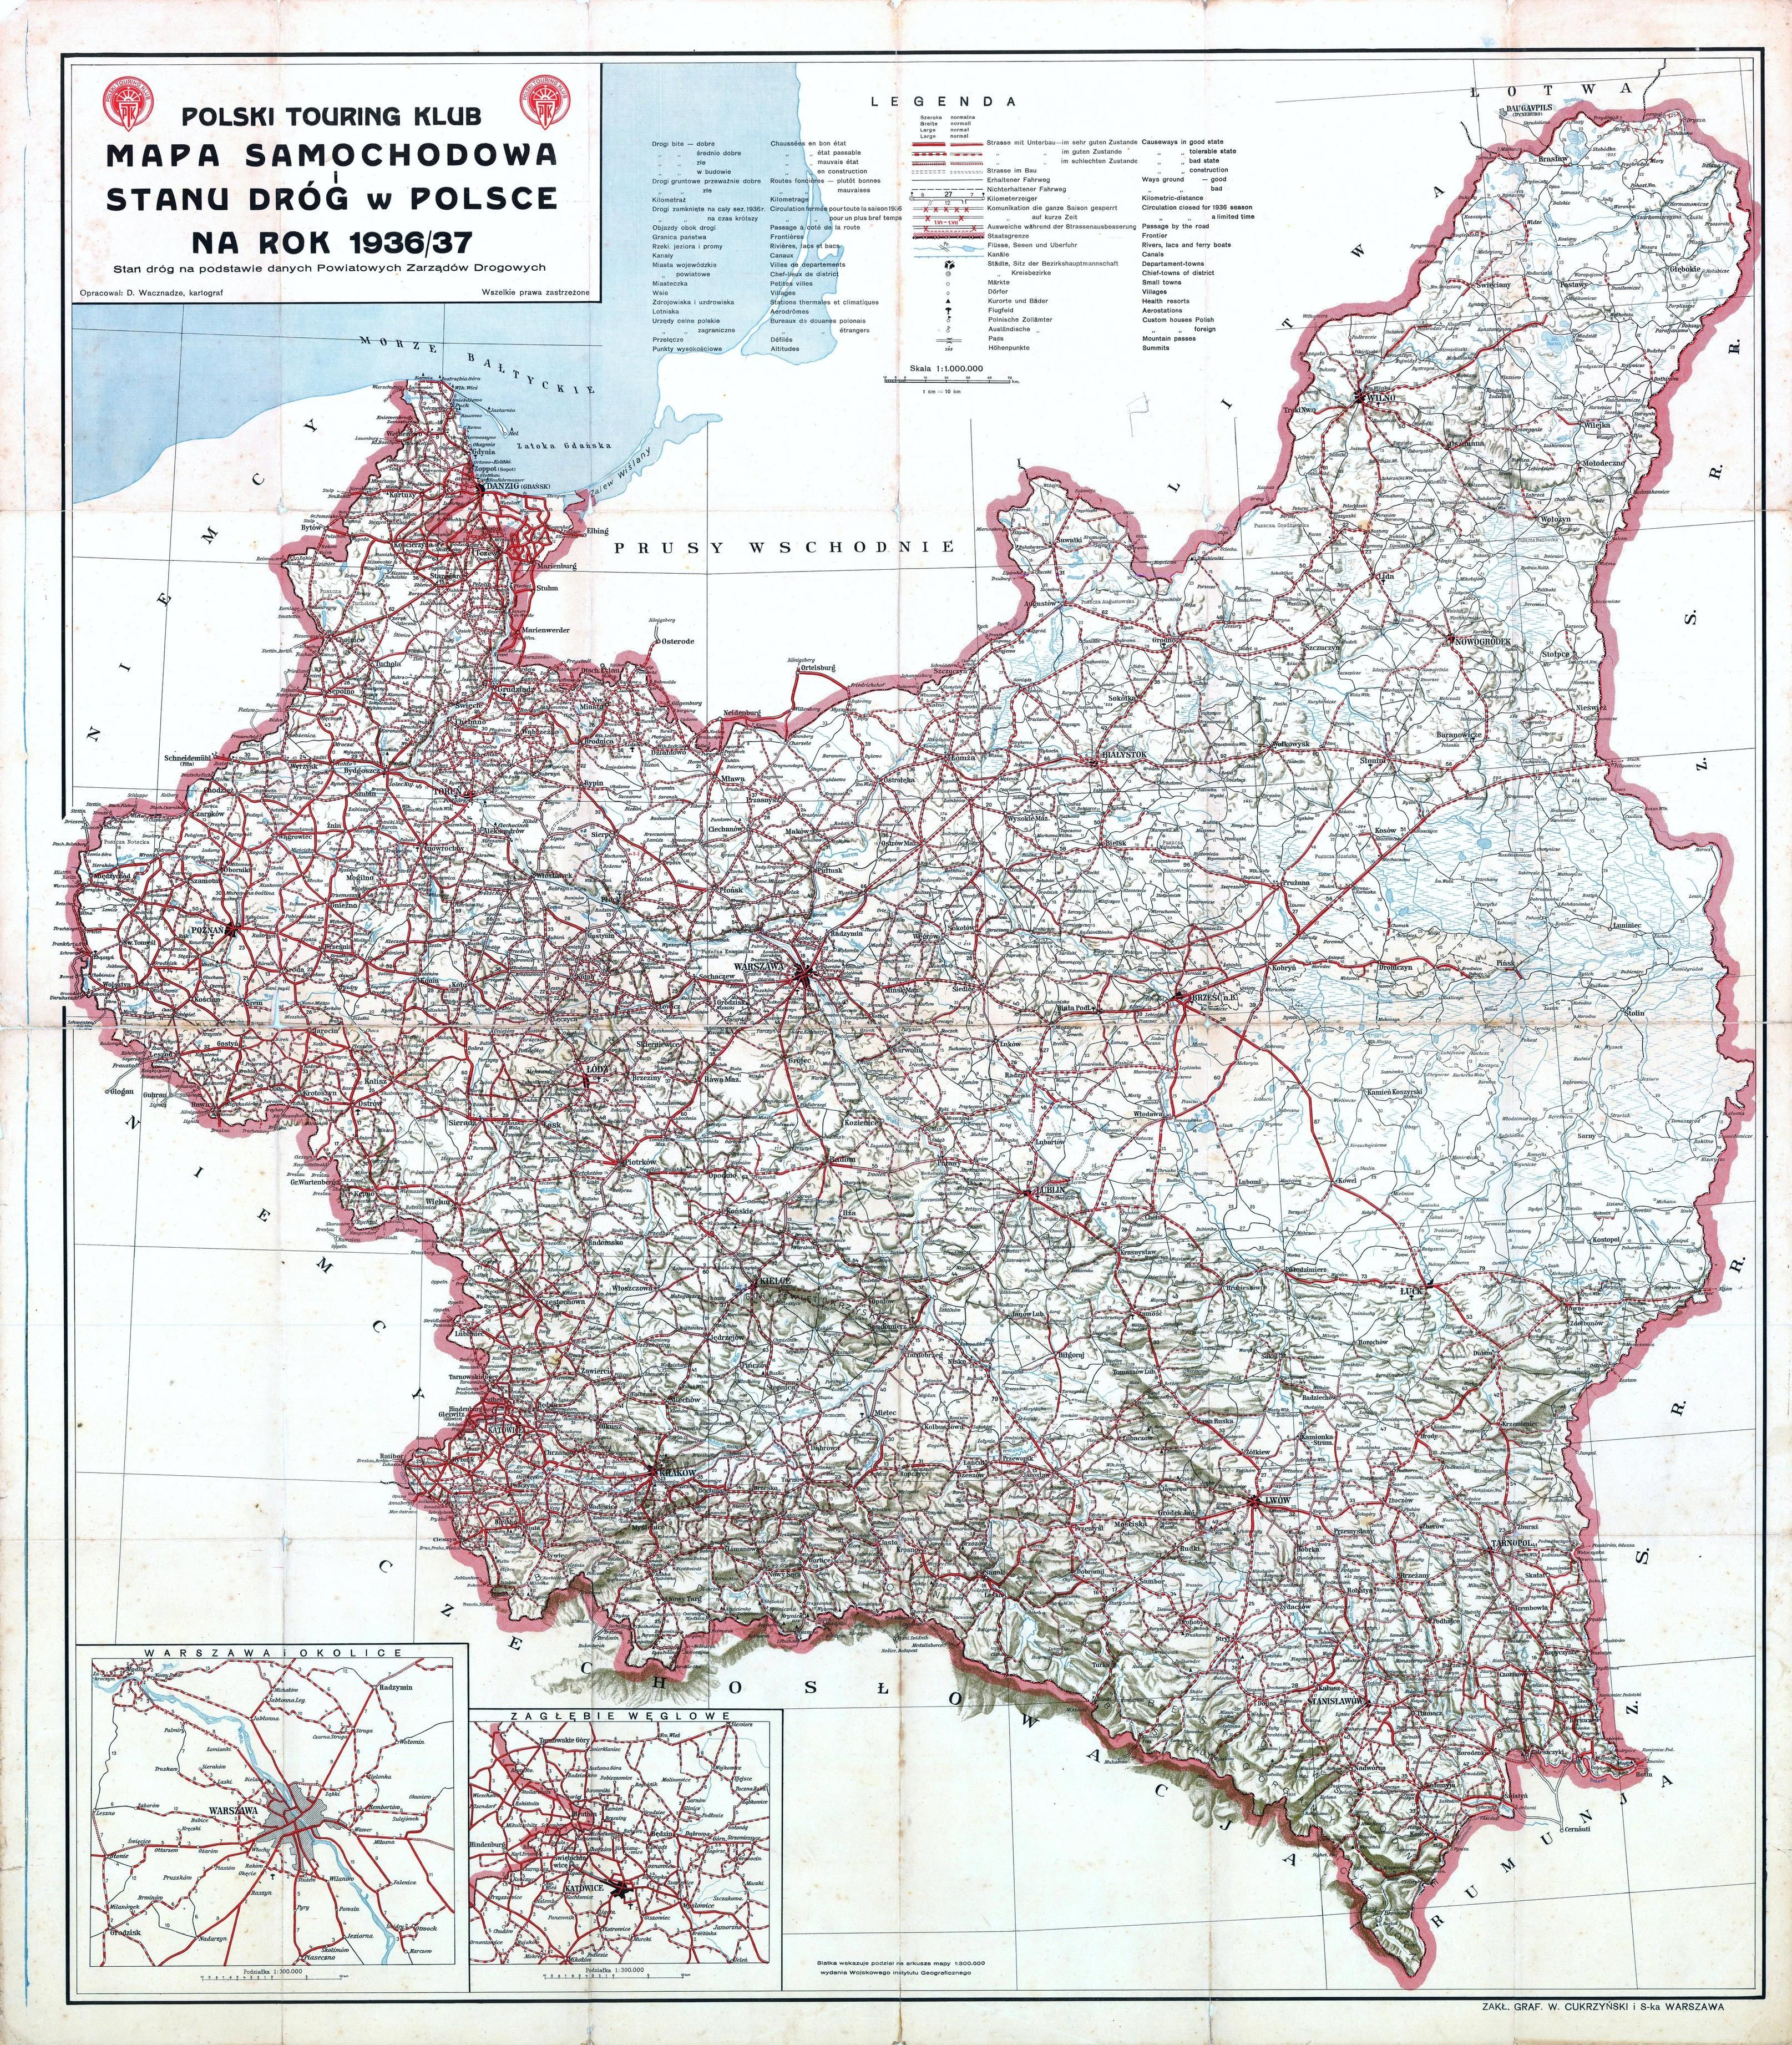 Road Map Of The State Of Roads In Poland In MAPS Pinterest - Poland us map